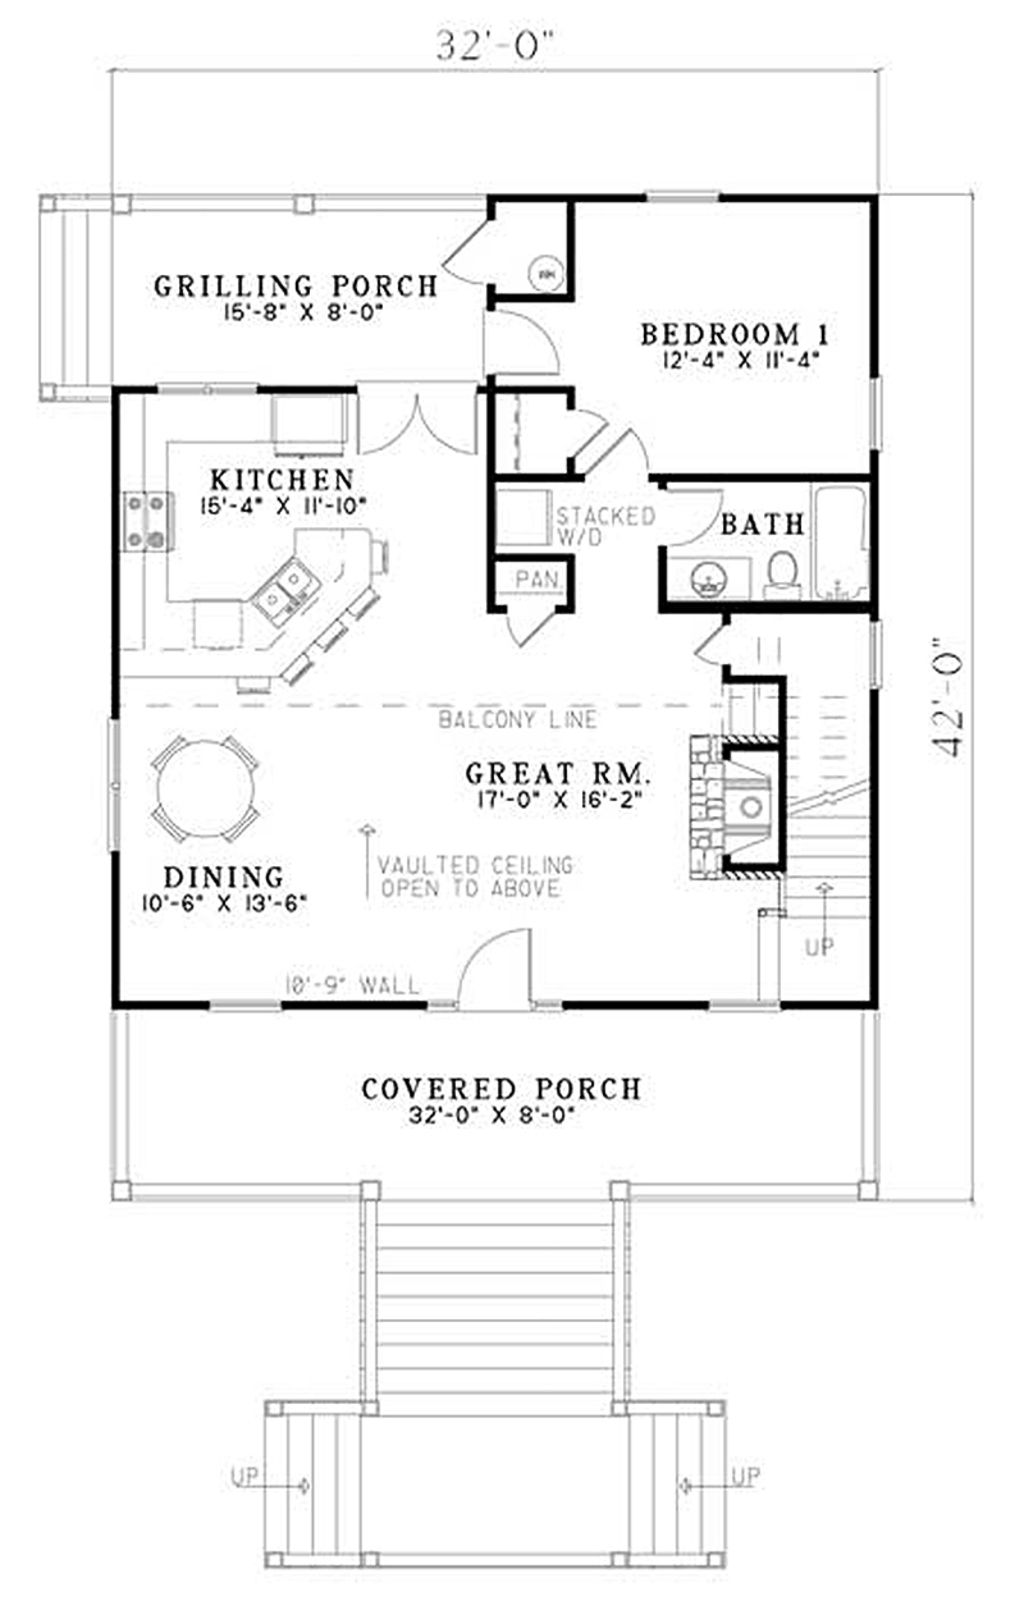 Cabin style house plan 2 beds 2 baths 1400 sq ft plan for 1400 sq ft floor plans